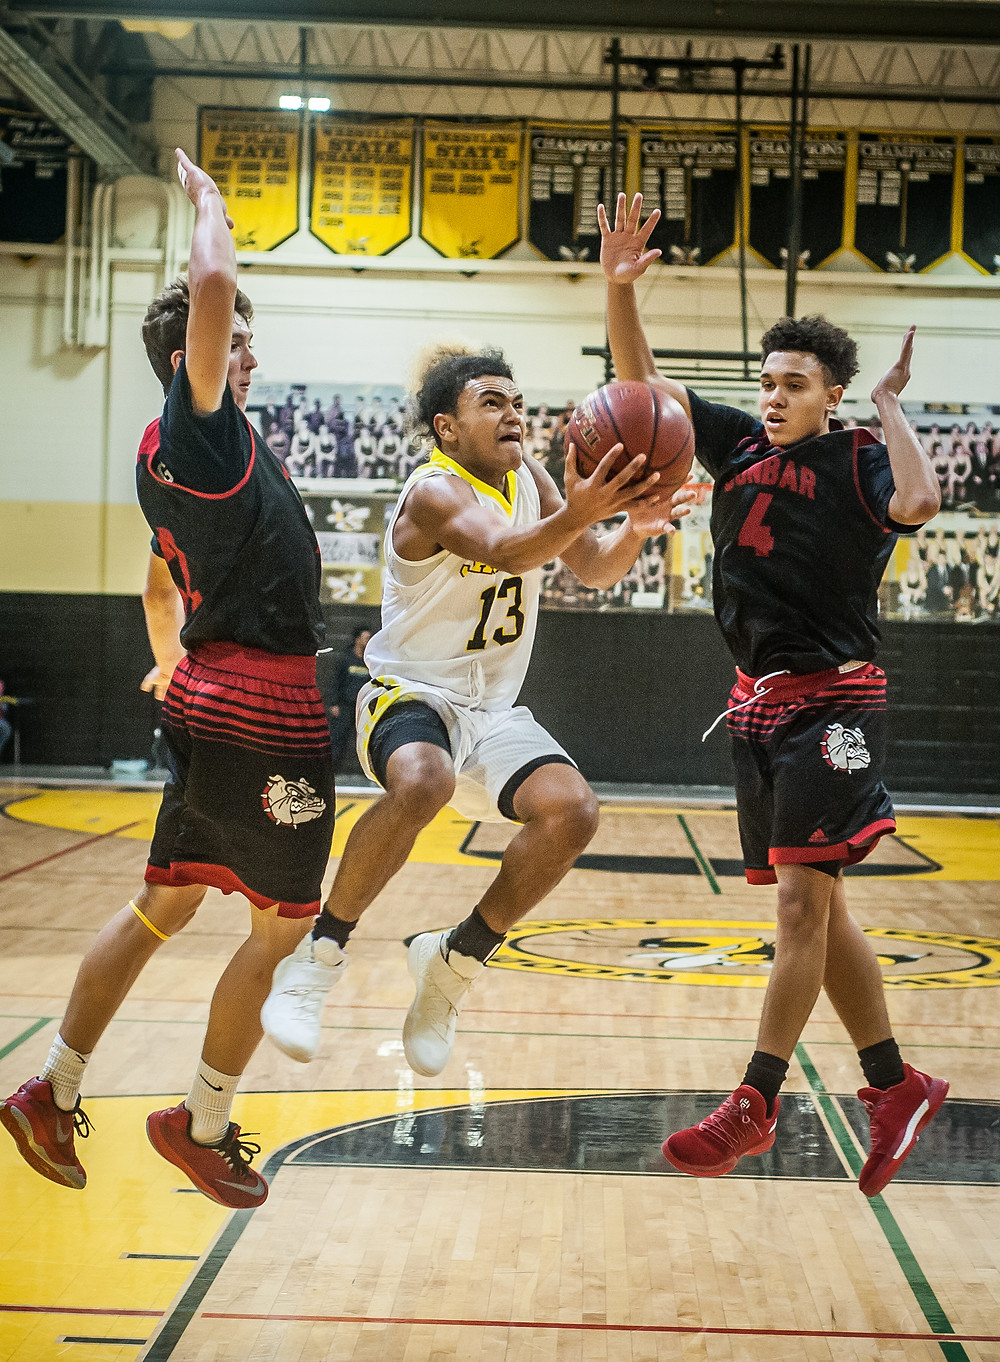 SOPHOMORE ANTHONY TABOR jumps between a pair of Dunbar defenders to attempt a layup in the season opener on Monday, Nov. 27 at Woodford County High School. (Photo by Bill Caine)